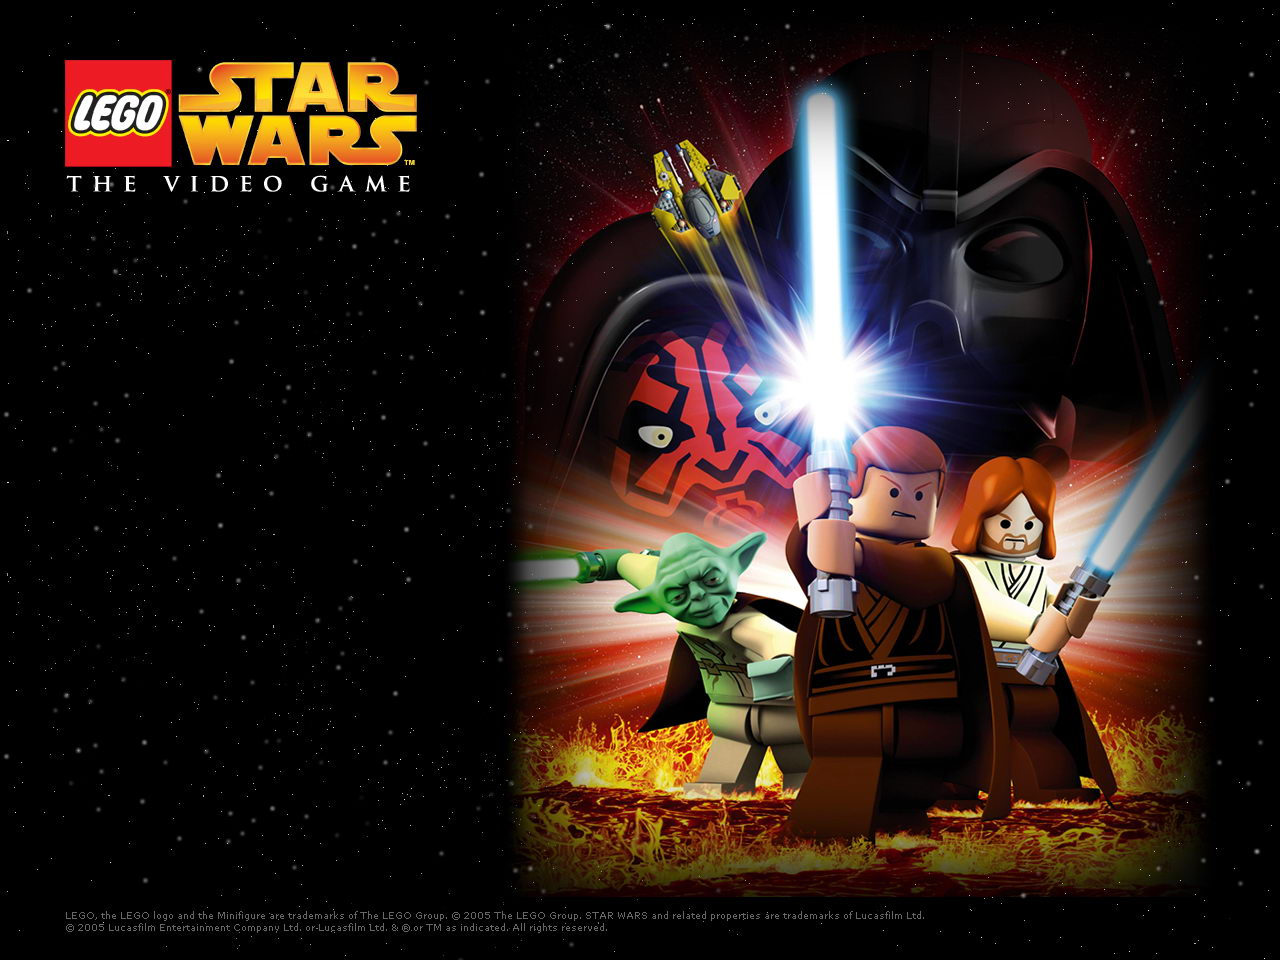 1280x960px LEGO Star Wars Wallpapers - WallpaperSafari